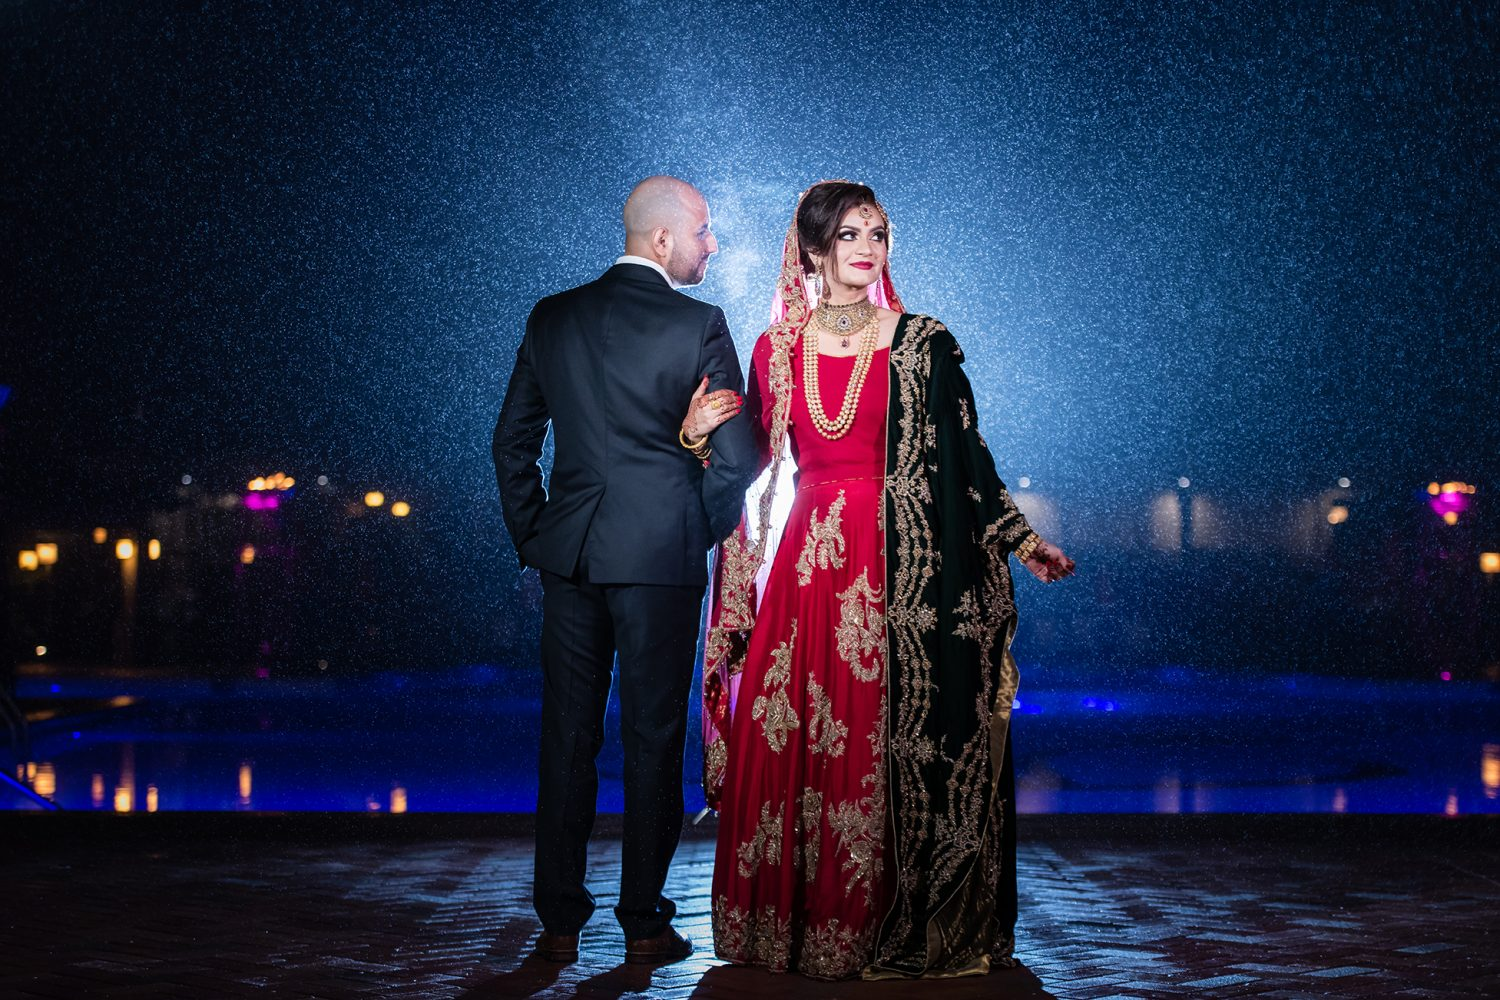 south_asian_wedding_photography_dhoom_studio_new_york61-e1573086591370 SOUTH ASIAN WEDDINGS